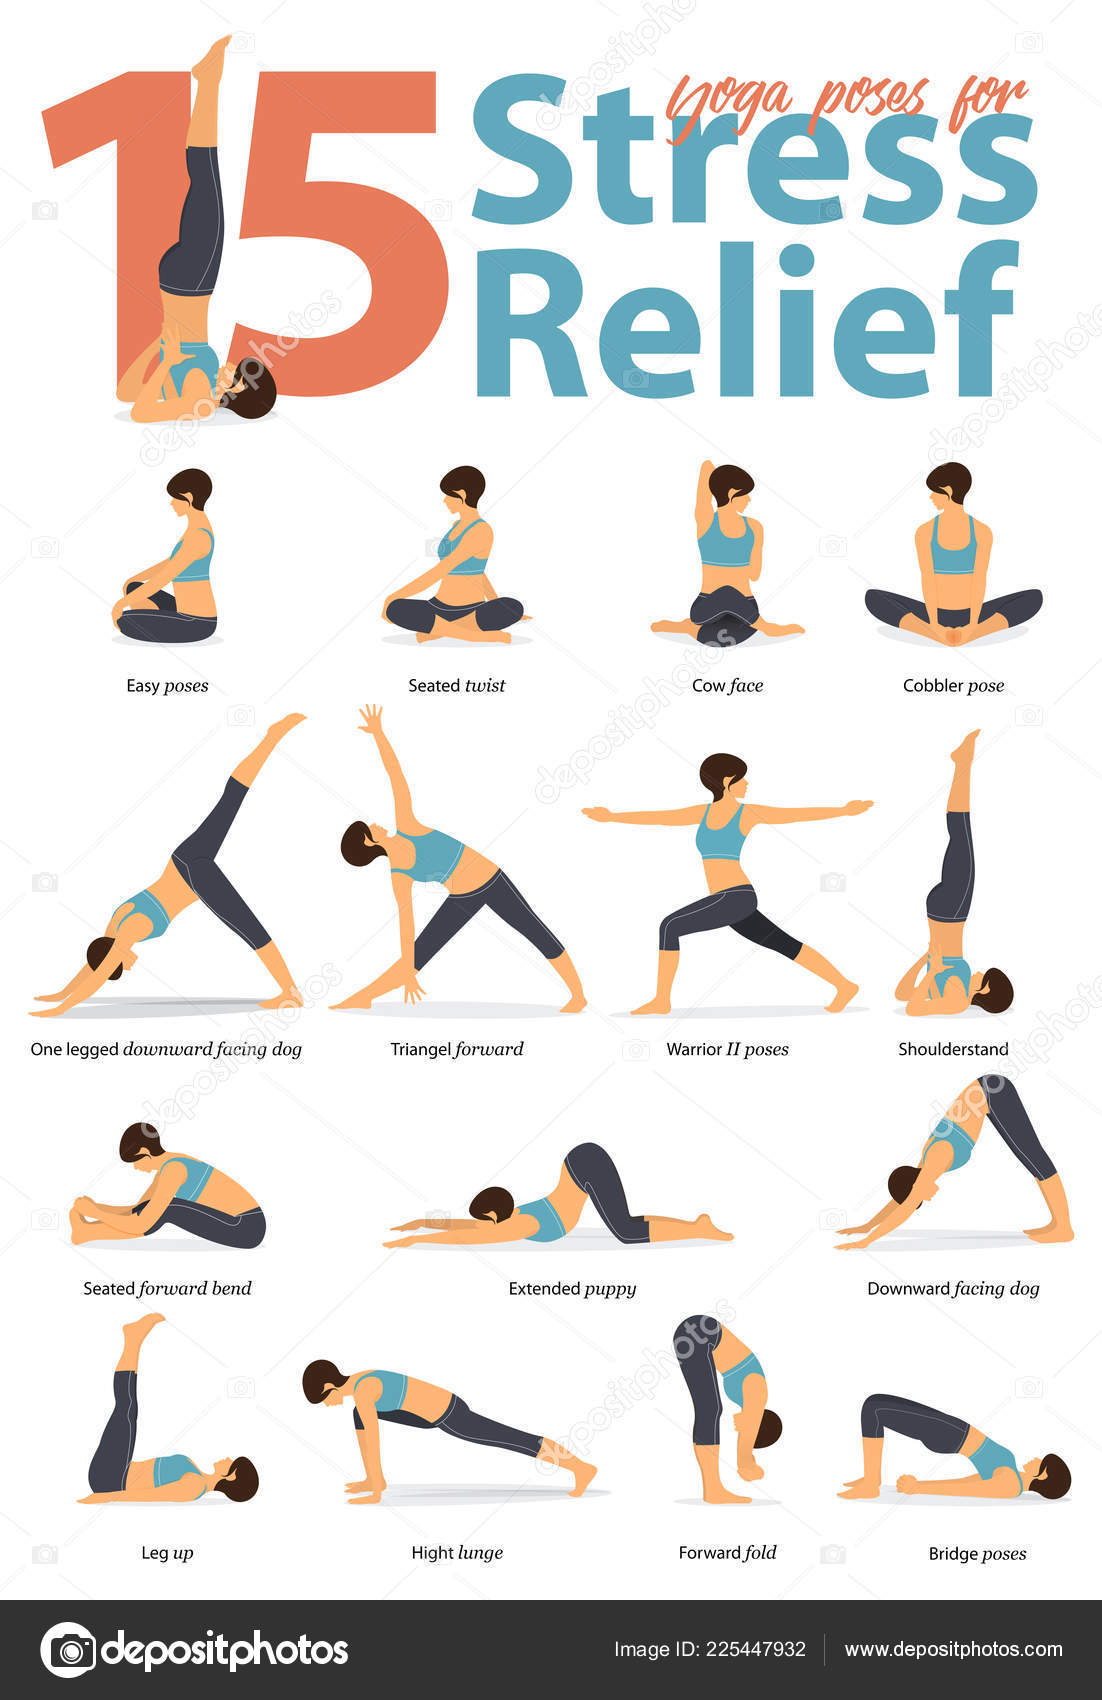 Set Yoga Postures Female Figures Infographic Yoga Poses Stress Relieve Stock Vector C Tond Ruangwit Gmail Com 225447932